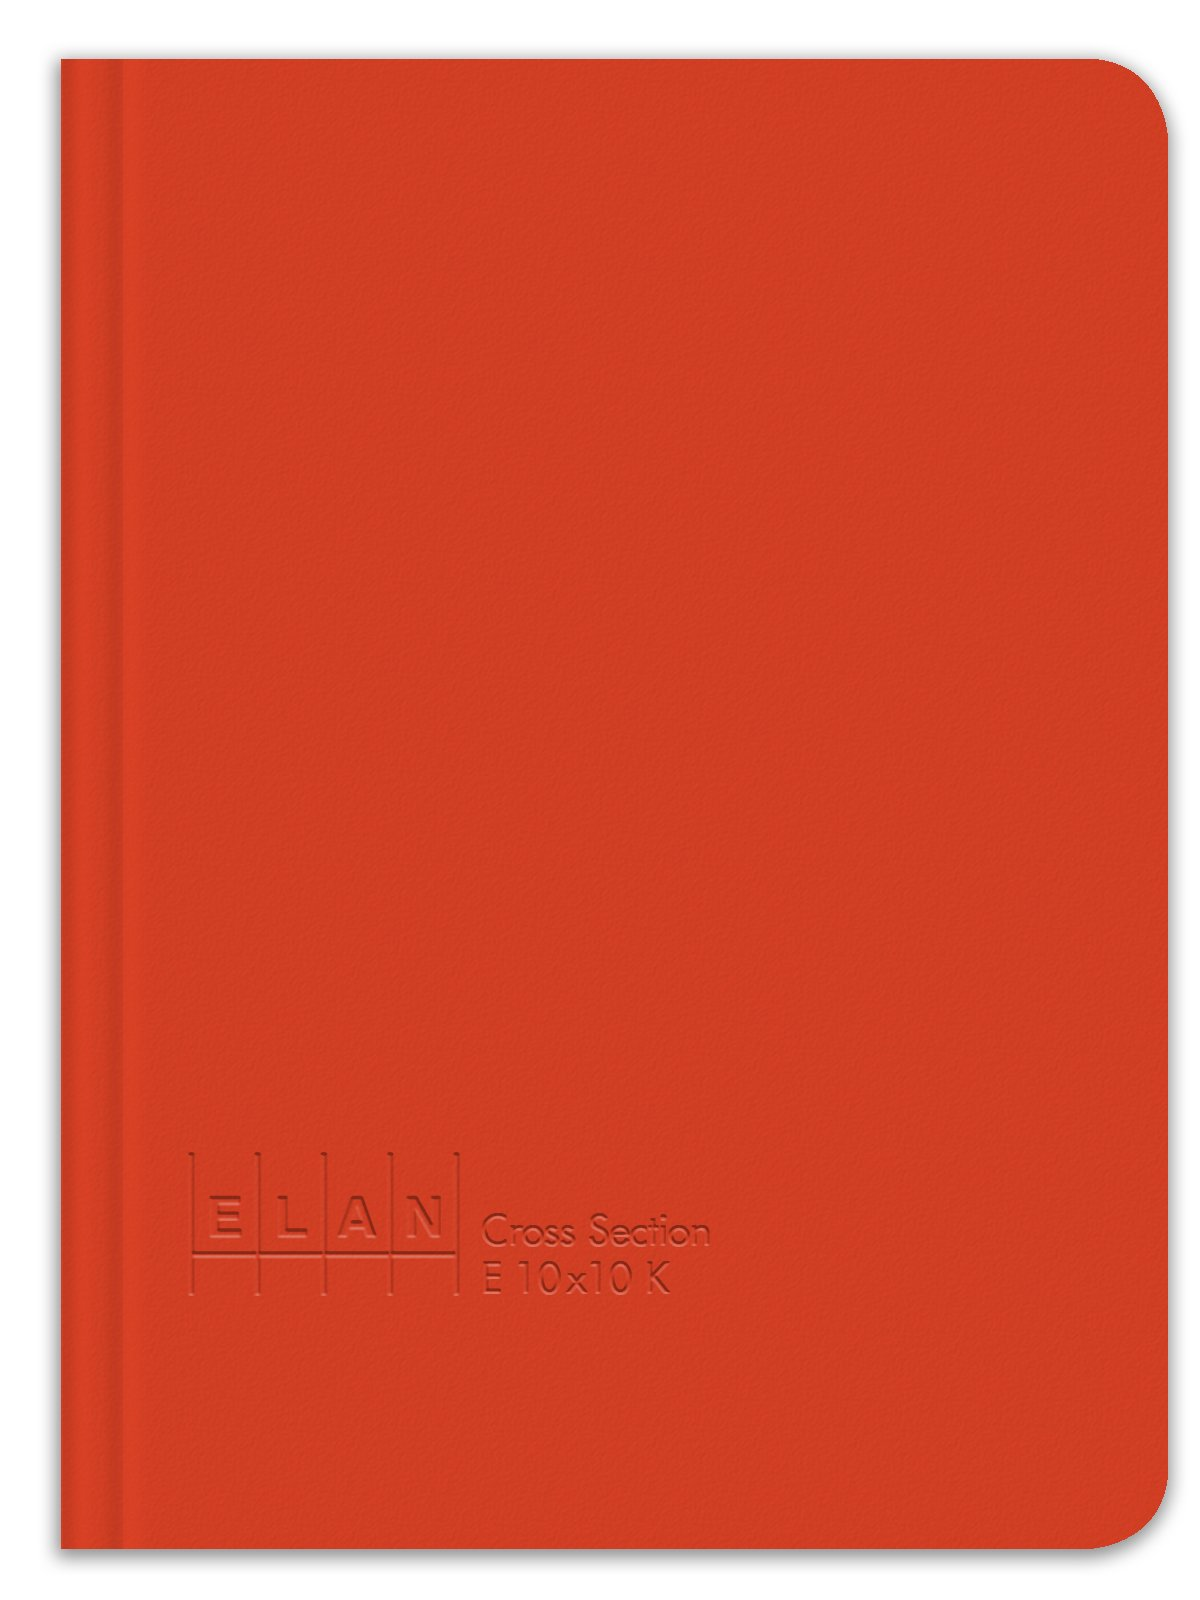 Elan Publishing Company E10x10K King Size Cross Section Book 6 ½ x 8 ½, Bright Orange Cover (Pack of 6)